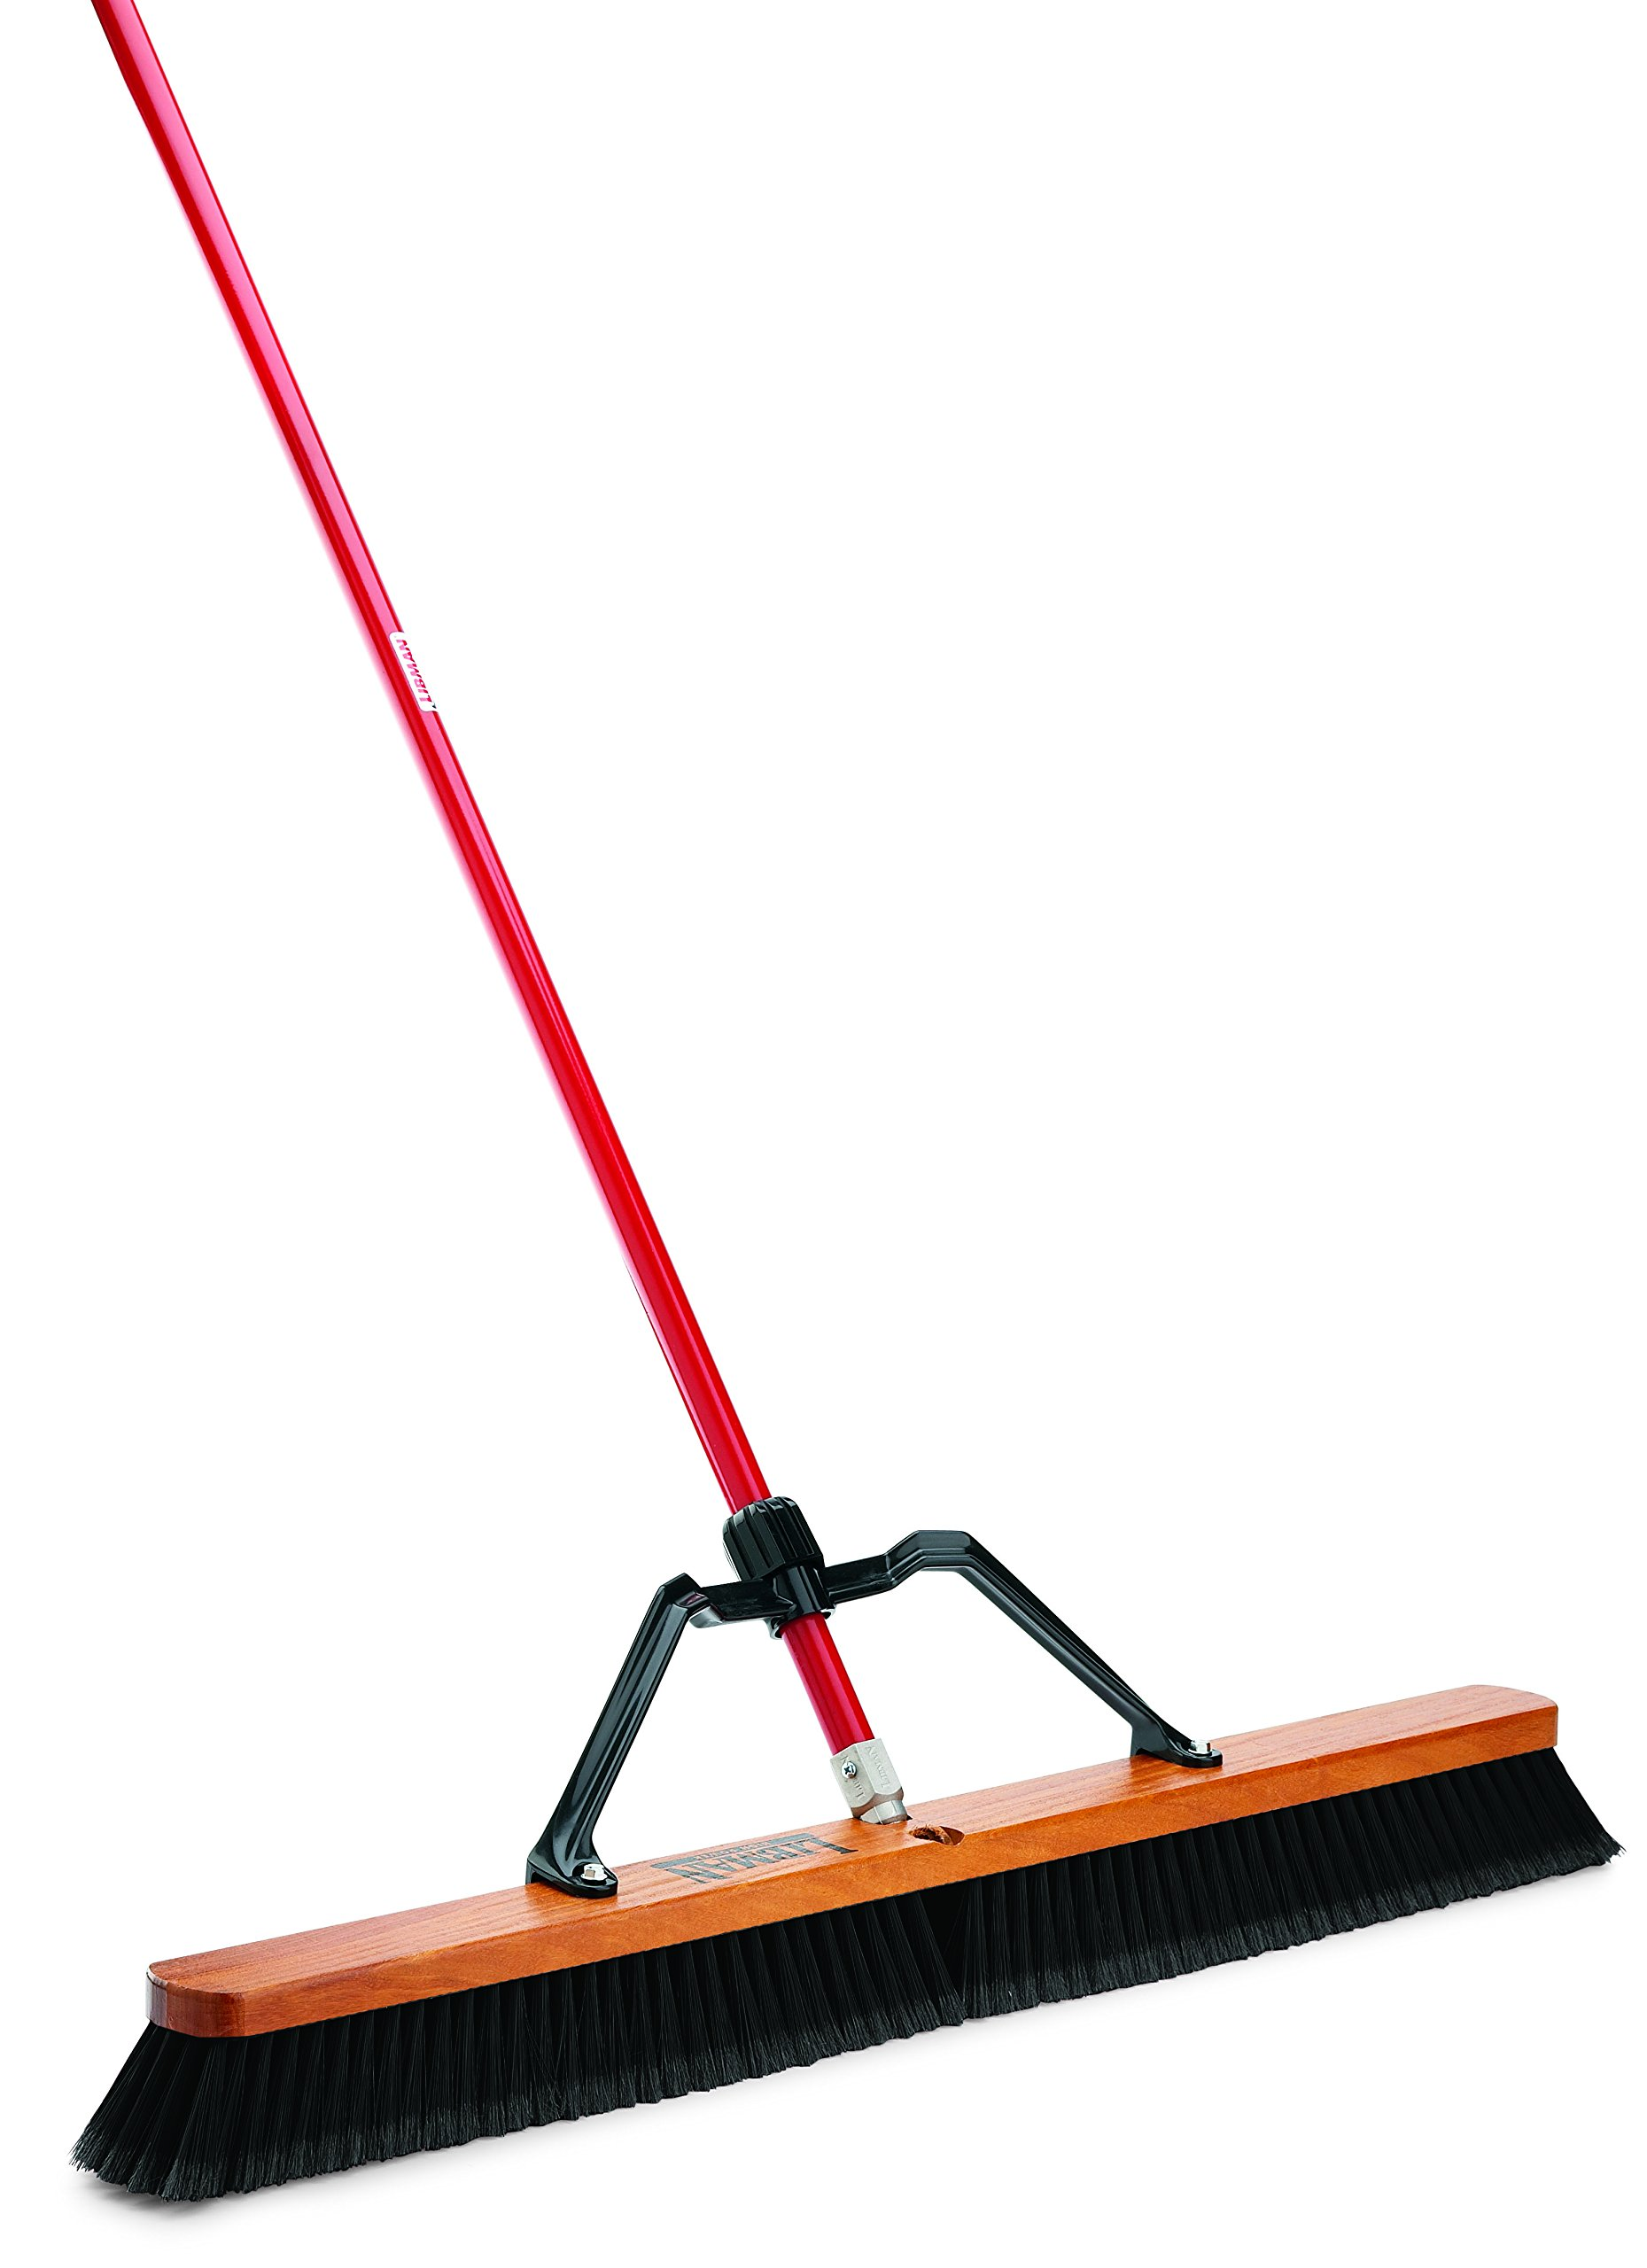 Libman Commercial 850 Smooth Surface Heavy Duty Push Broom, 62'' Length, 36'' Width, Black/Red (Pack of 3) by Libman Commercial